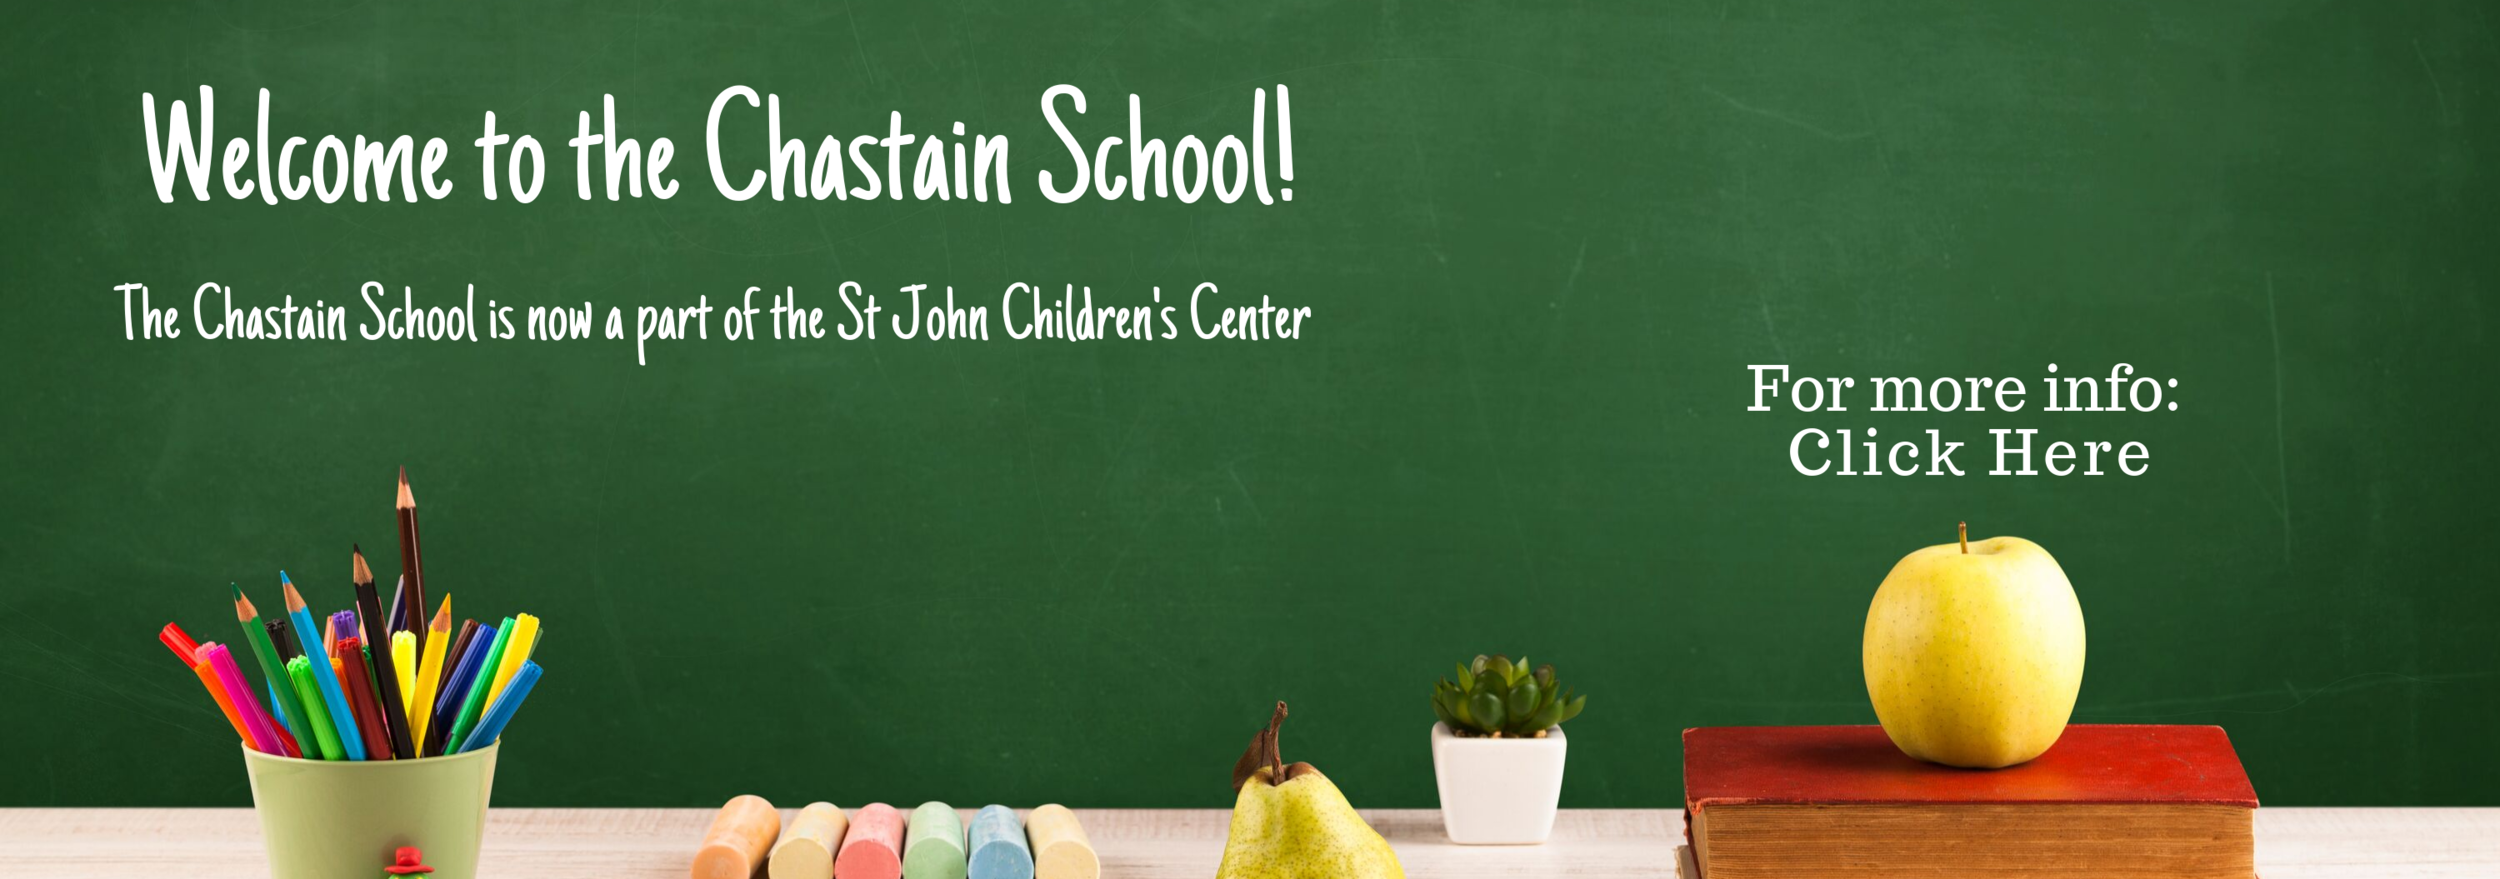 Chastain School Banner.png